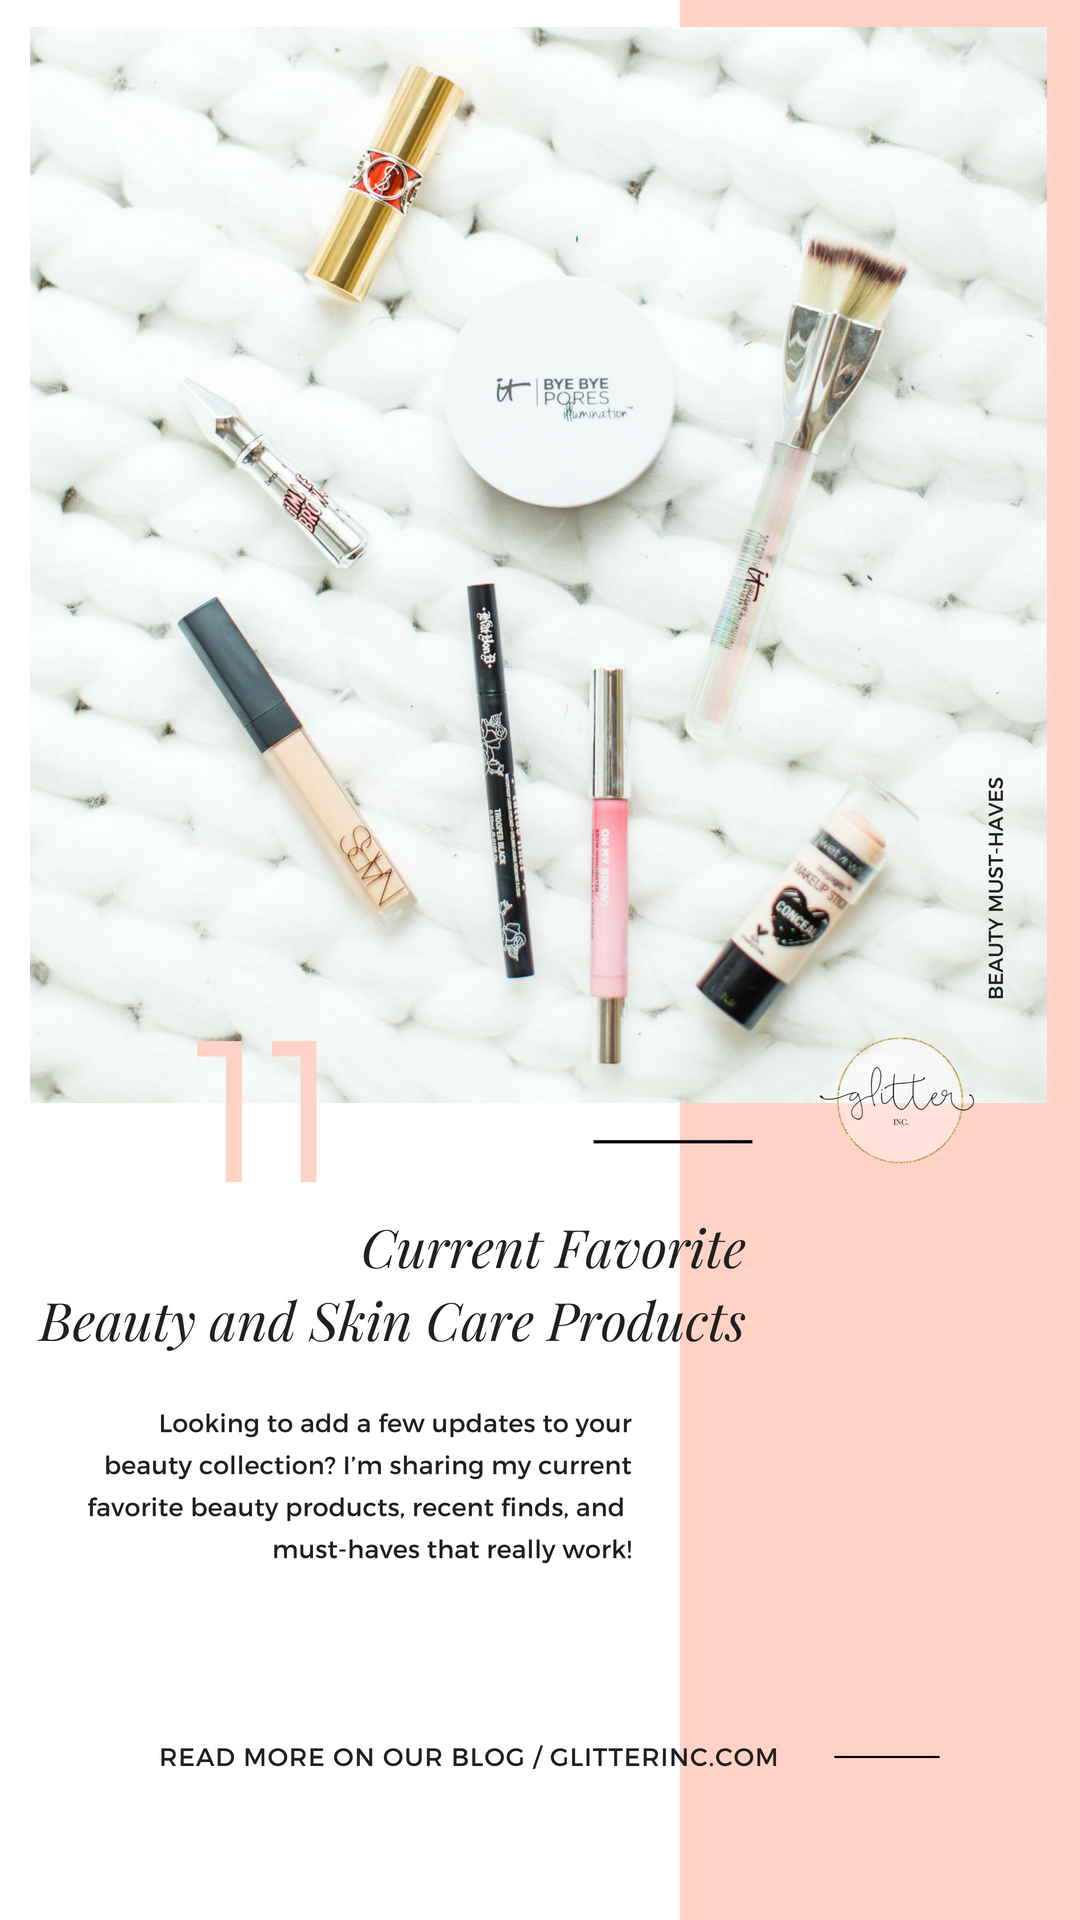 Lifestyle blogger Lexi of Glitter, Inc. shares her current favorite beauty products, including both must-have makeup and skincare products that really work! #beauty #beautymusthaves #beautyfavorites #skincarefavorites #skincare Click through for the details. | glitterinc.com | @glitterinc